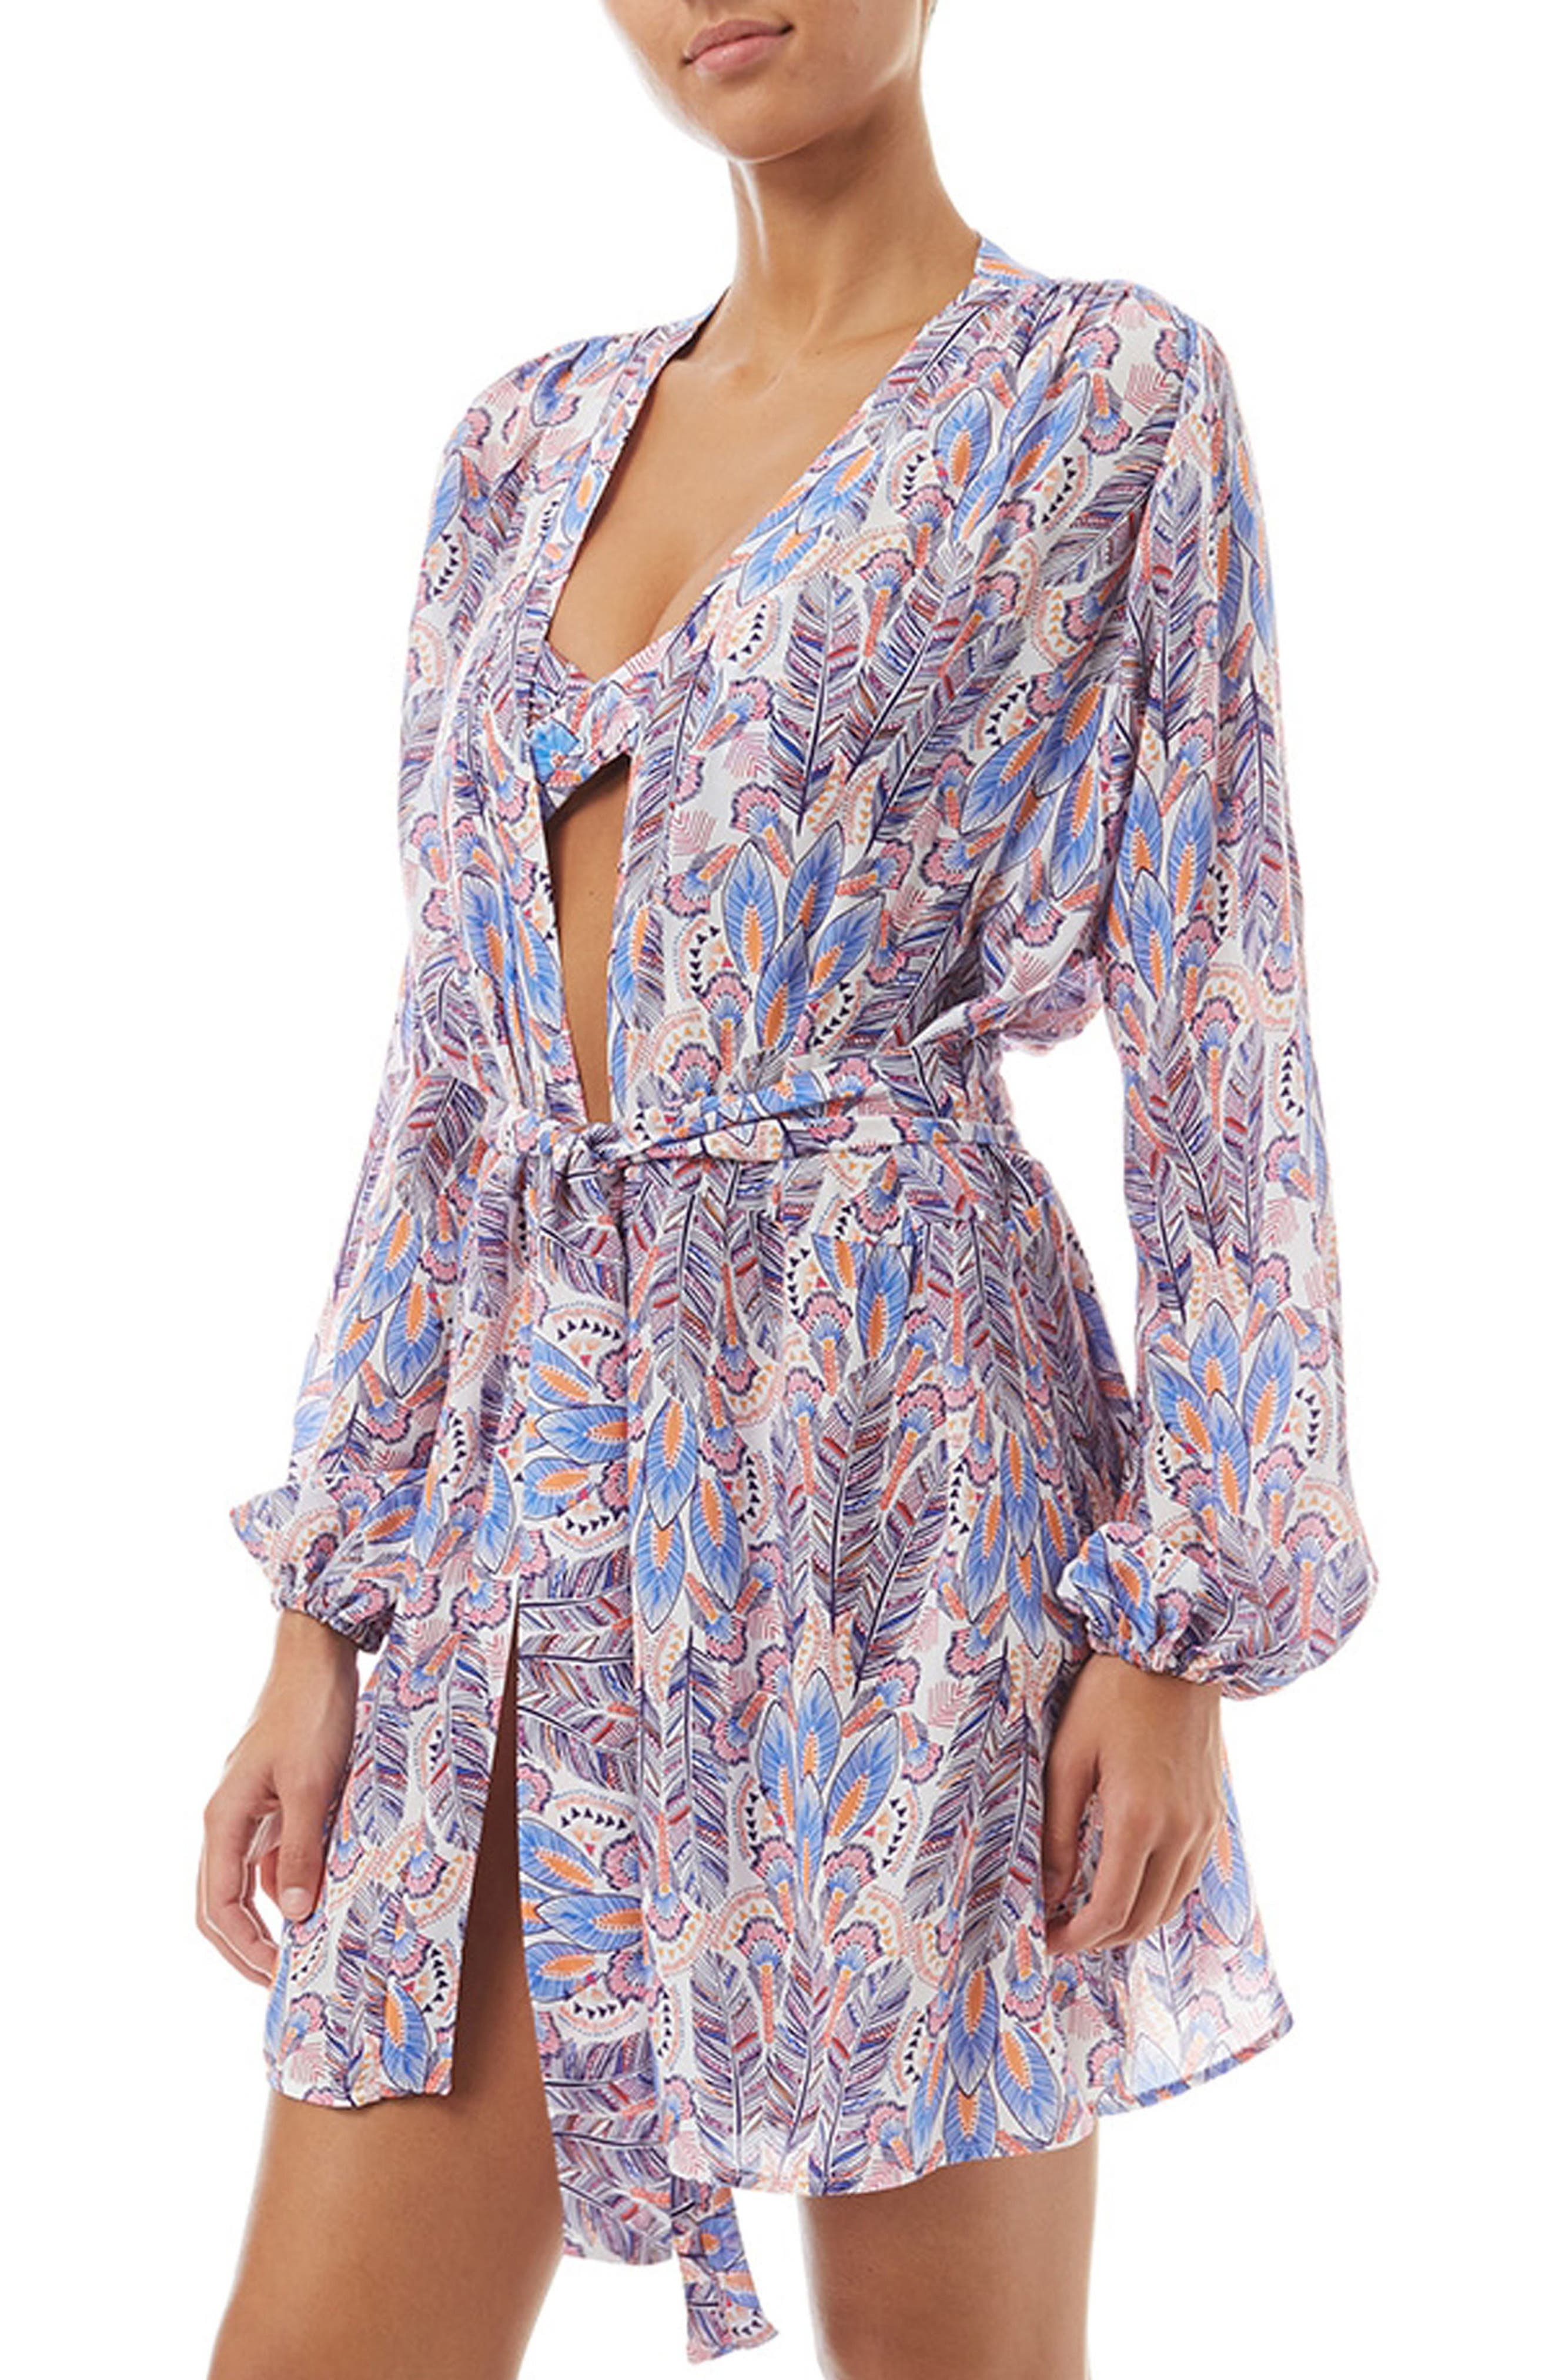 Kiera Cover-Up Wrap,                         Main,                         color, Feathers